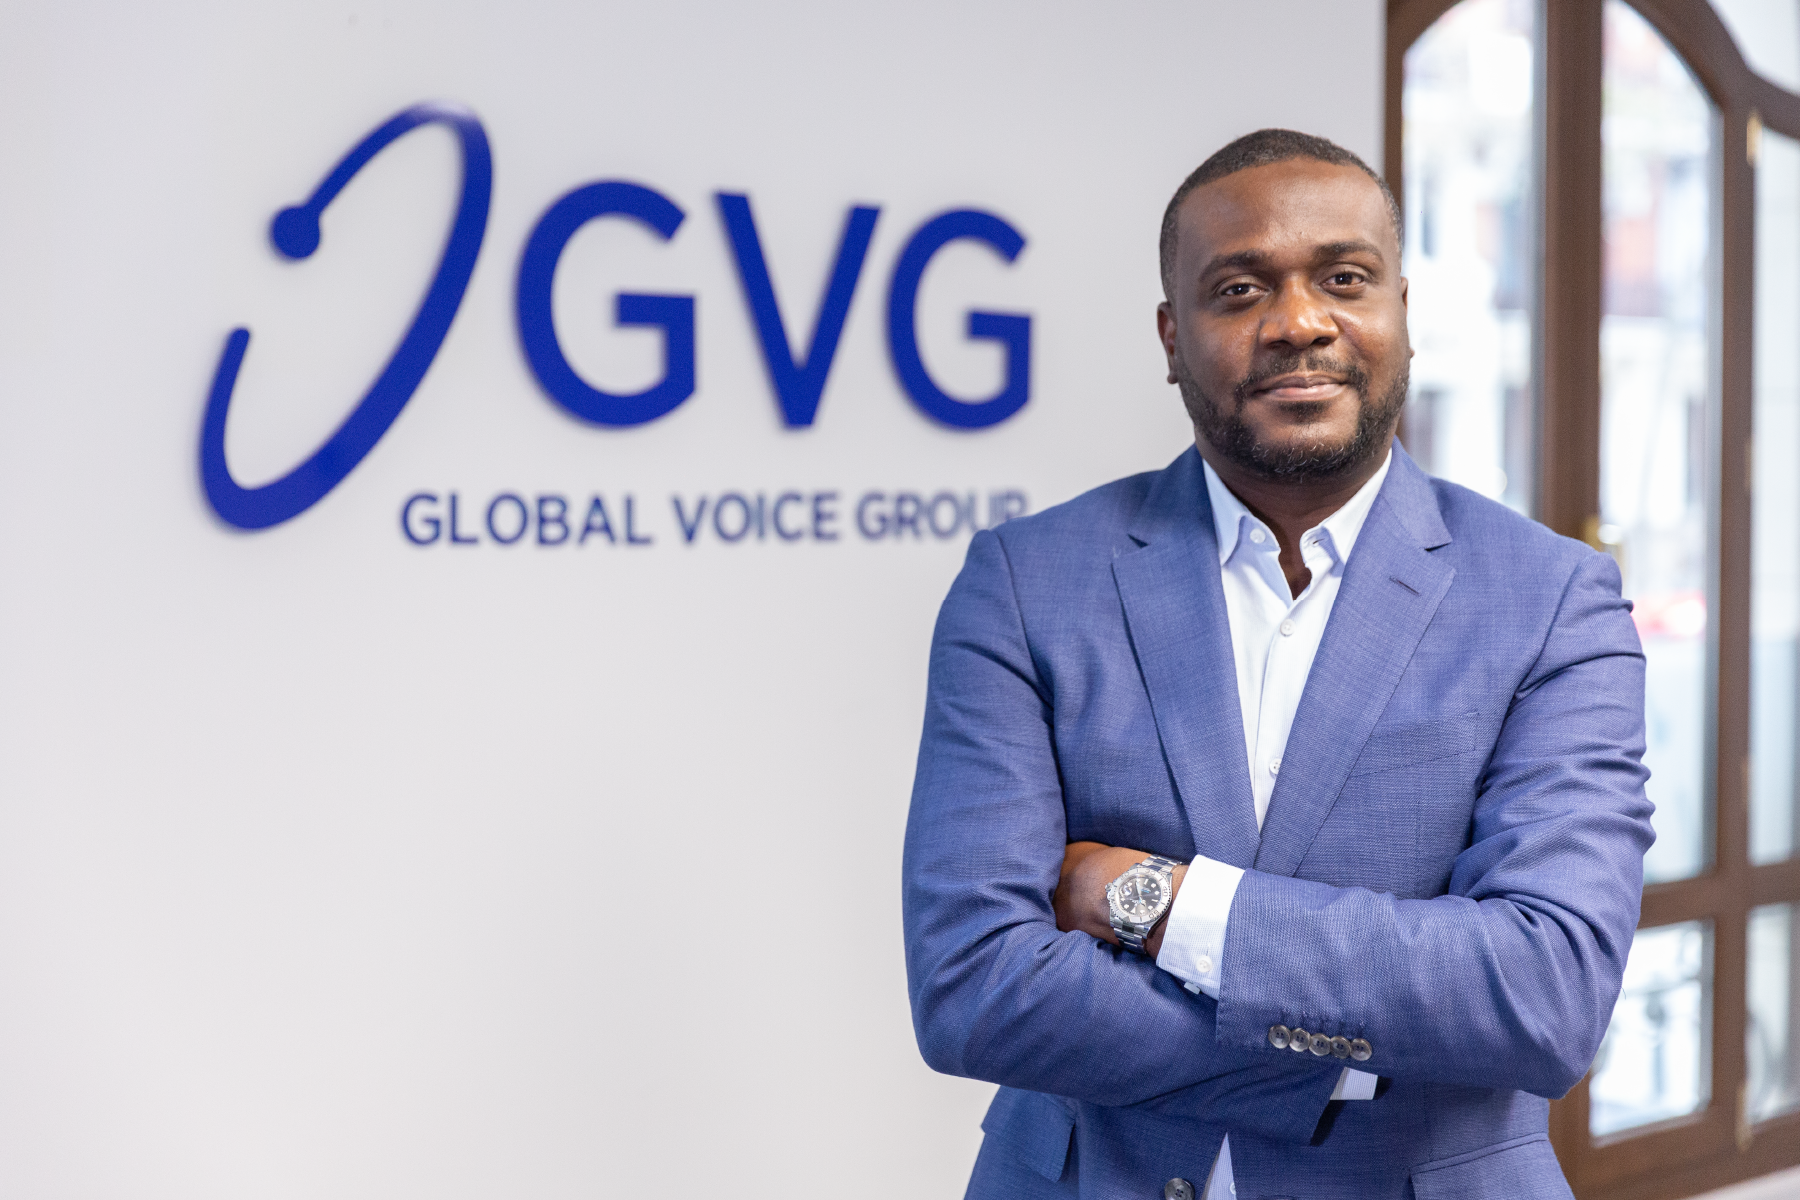 James Claude CEO of Global Voice Group Talks Being A Leader in 2021